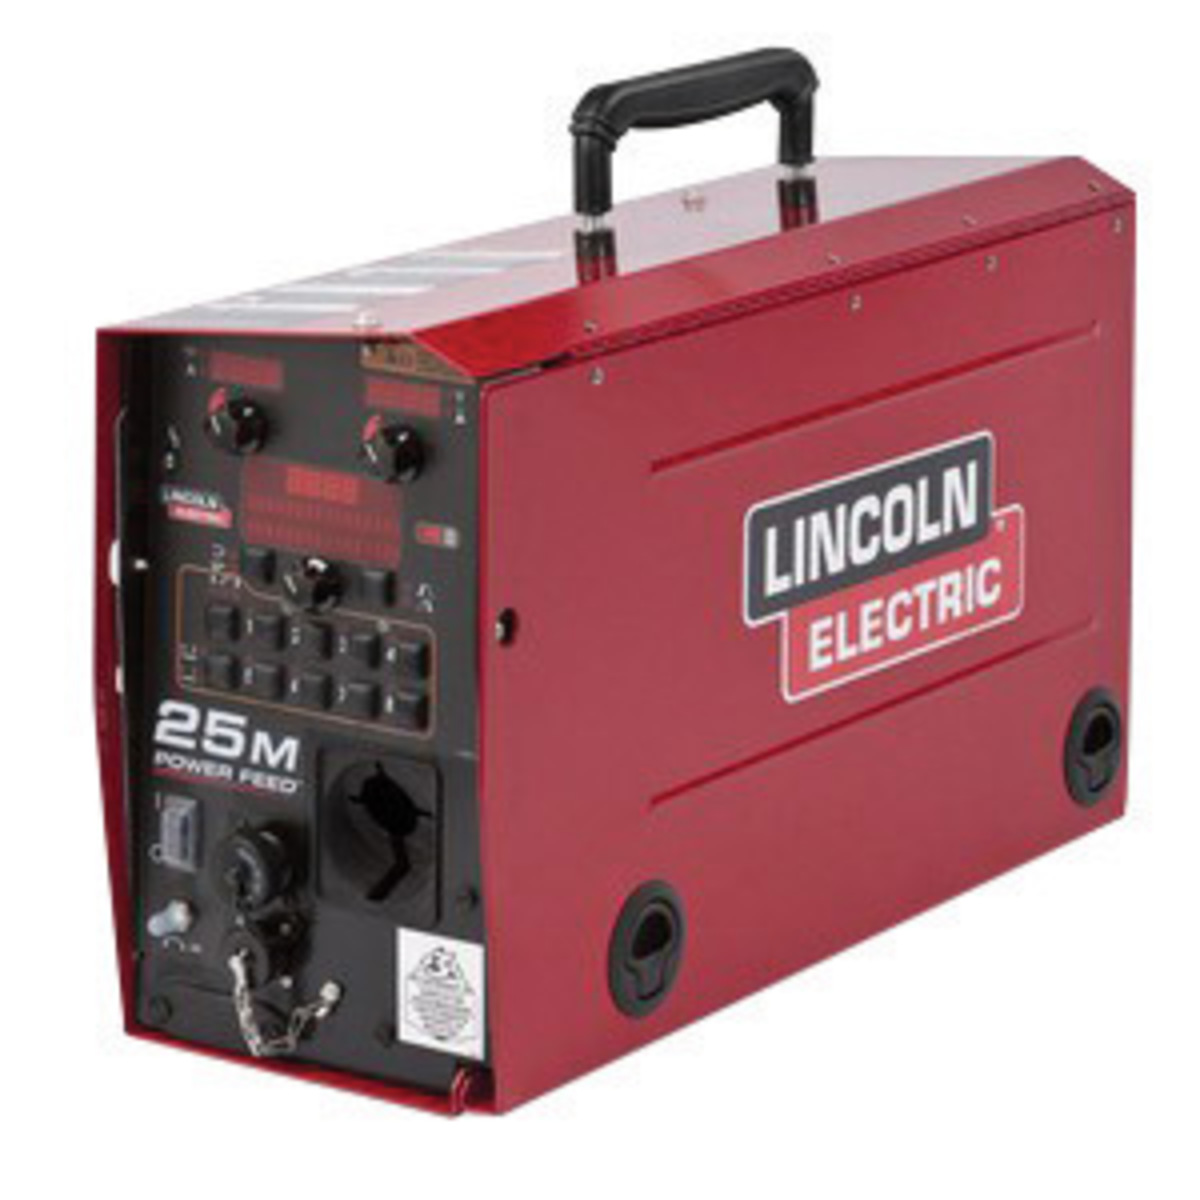 hrm lincoln electric case The case describes lincoln electric's business strategy and incentive system, and it discusses the global strategy choices that the company faces going forward.